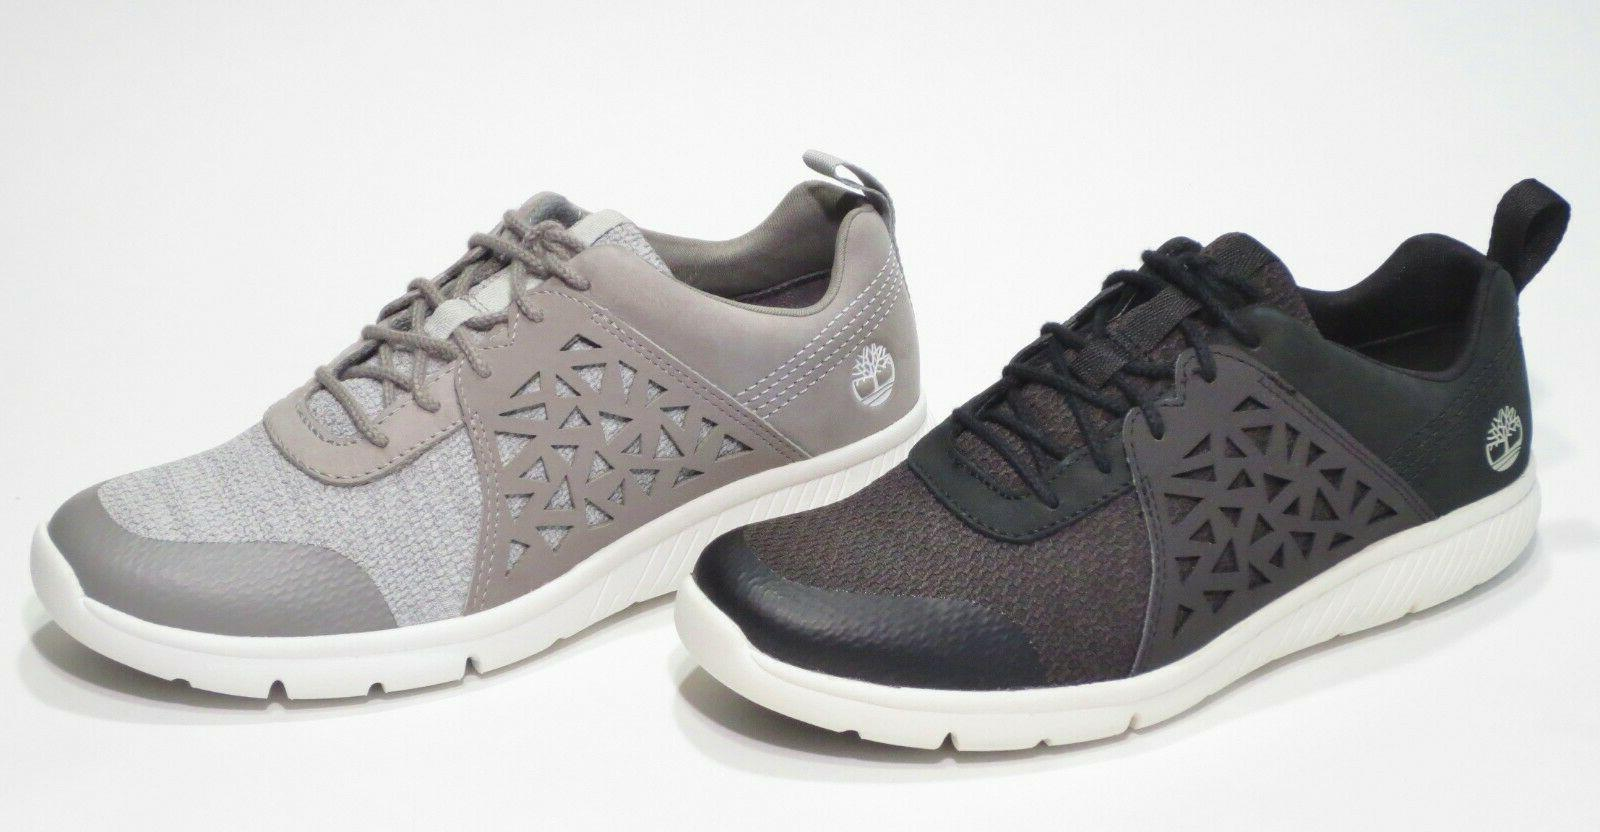 Boltero Low Sneakers Shoes Black Gray